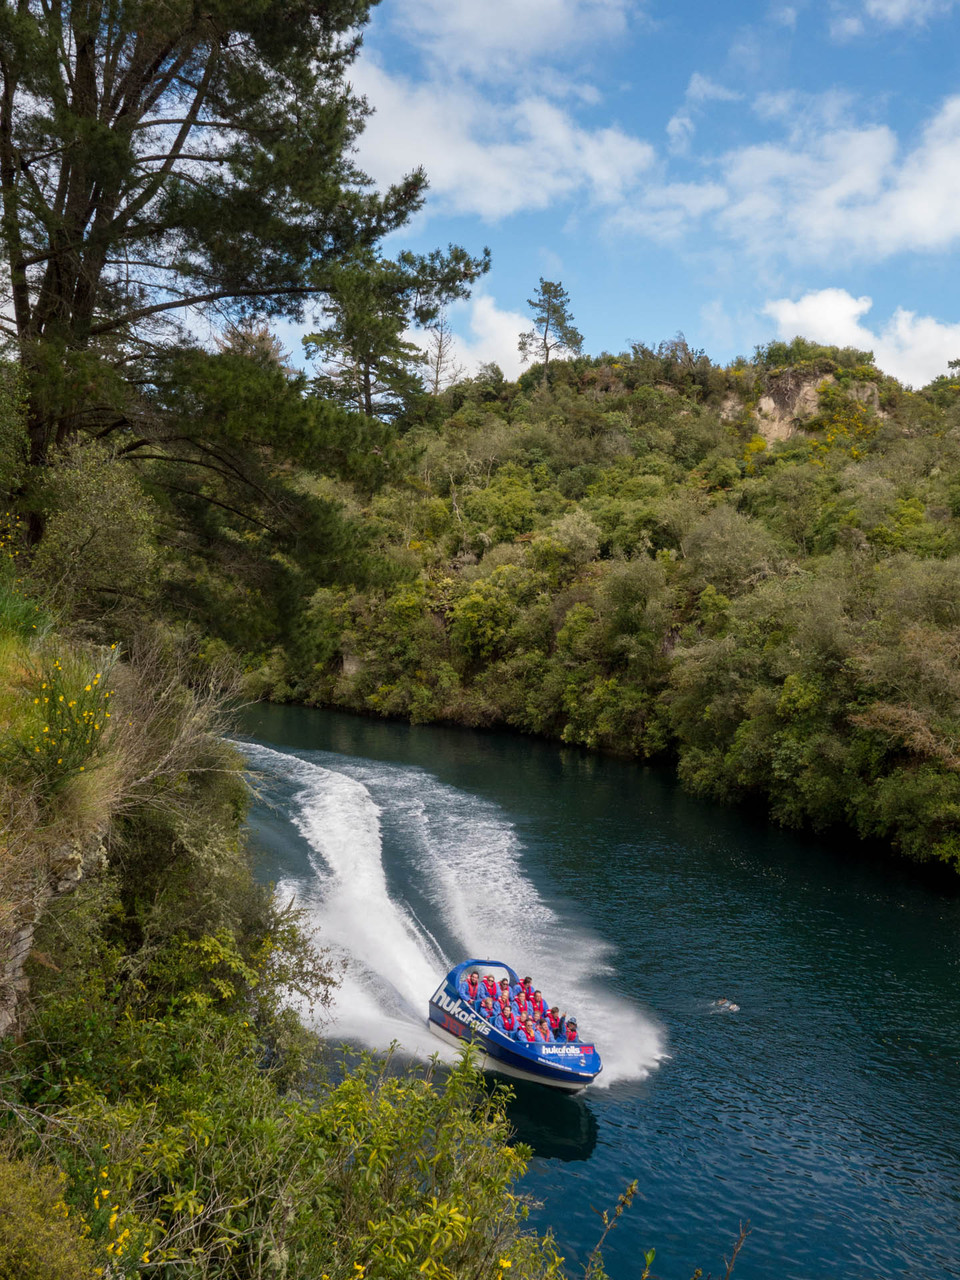 Huka Falls Jet (works as a Jetski and is up to 80 km/h fast), near Taupo